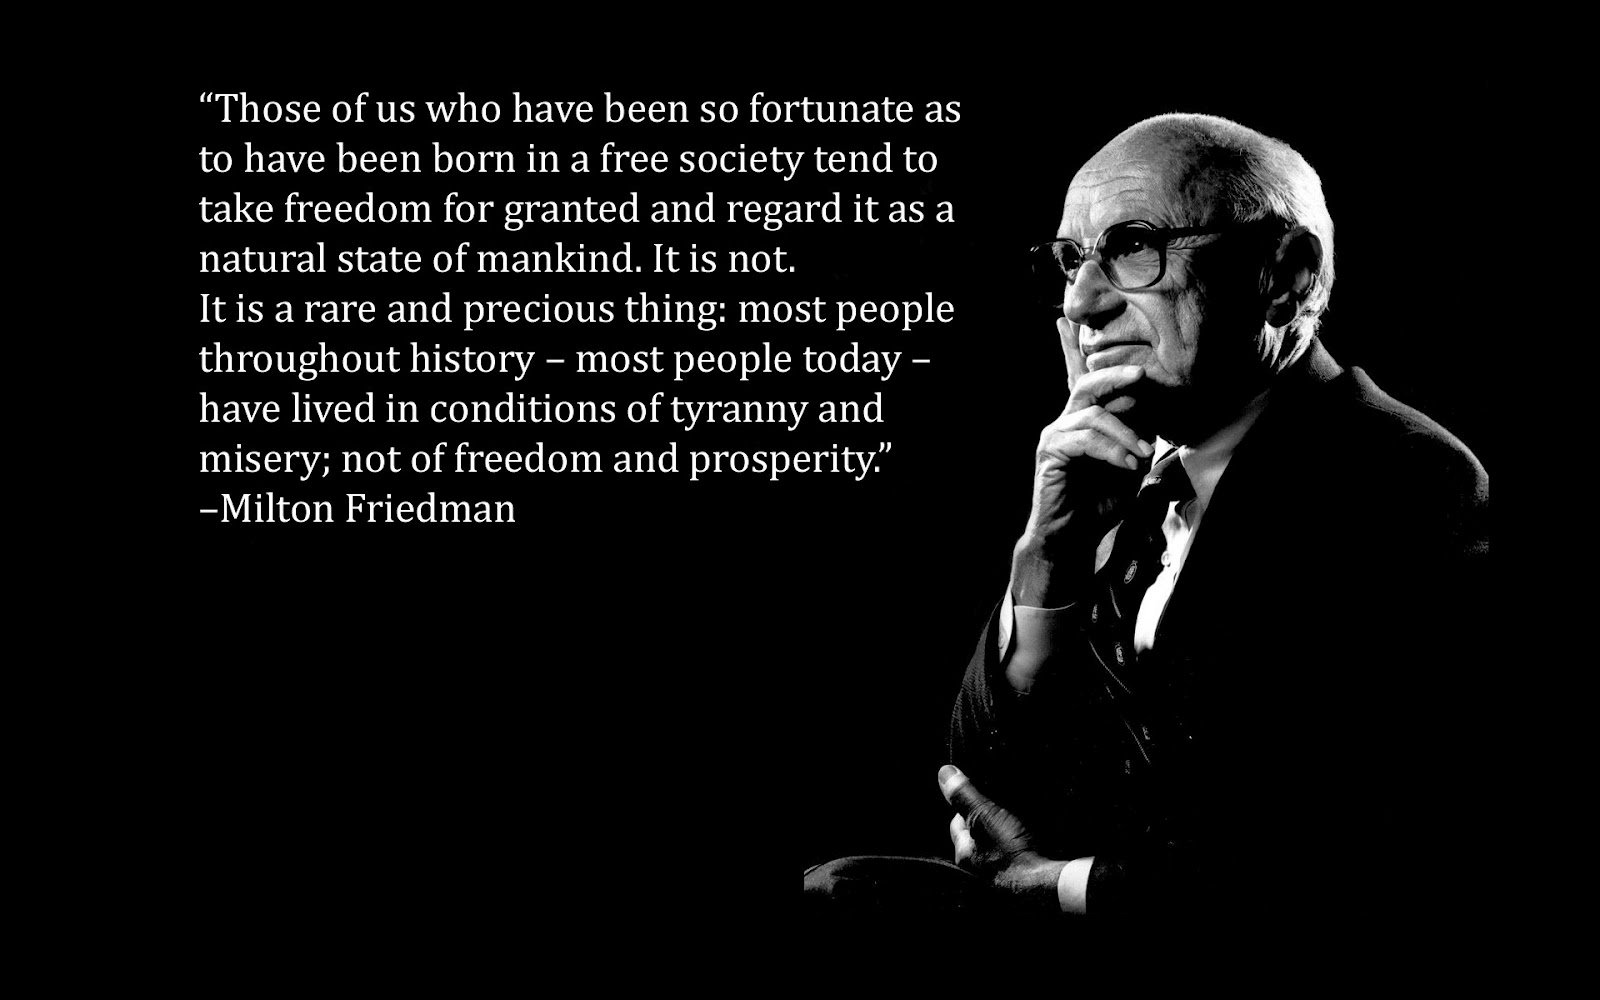 an analysis of themes in capitalism and freedom by milton friedman Milton friedman (1912 - 2006) was an american nobel laureate economist and public intellectual an advocate of economic freedom, friedman made major contributions to the fields of macroeconomics, microeconomics, economic history and statistics in 1976, he was awarded the nobel memorial prize in.